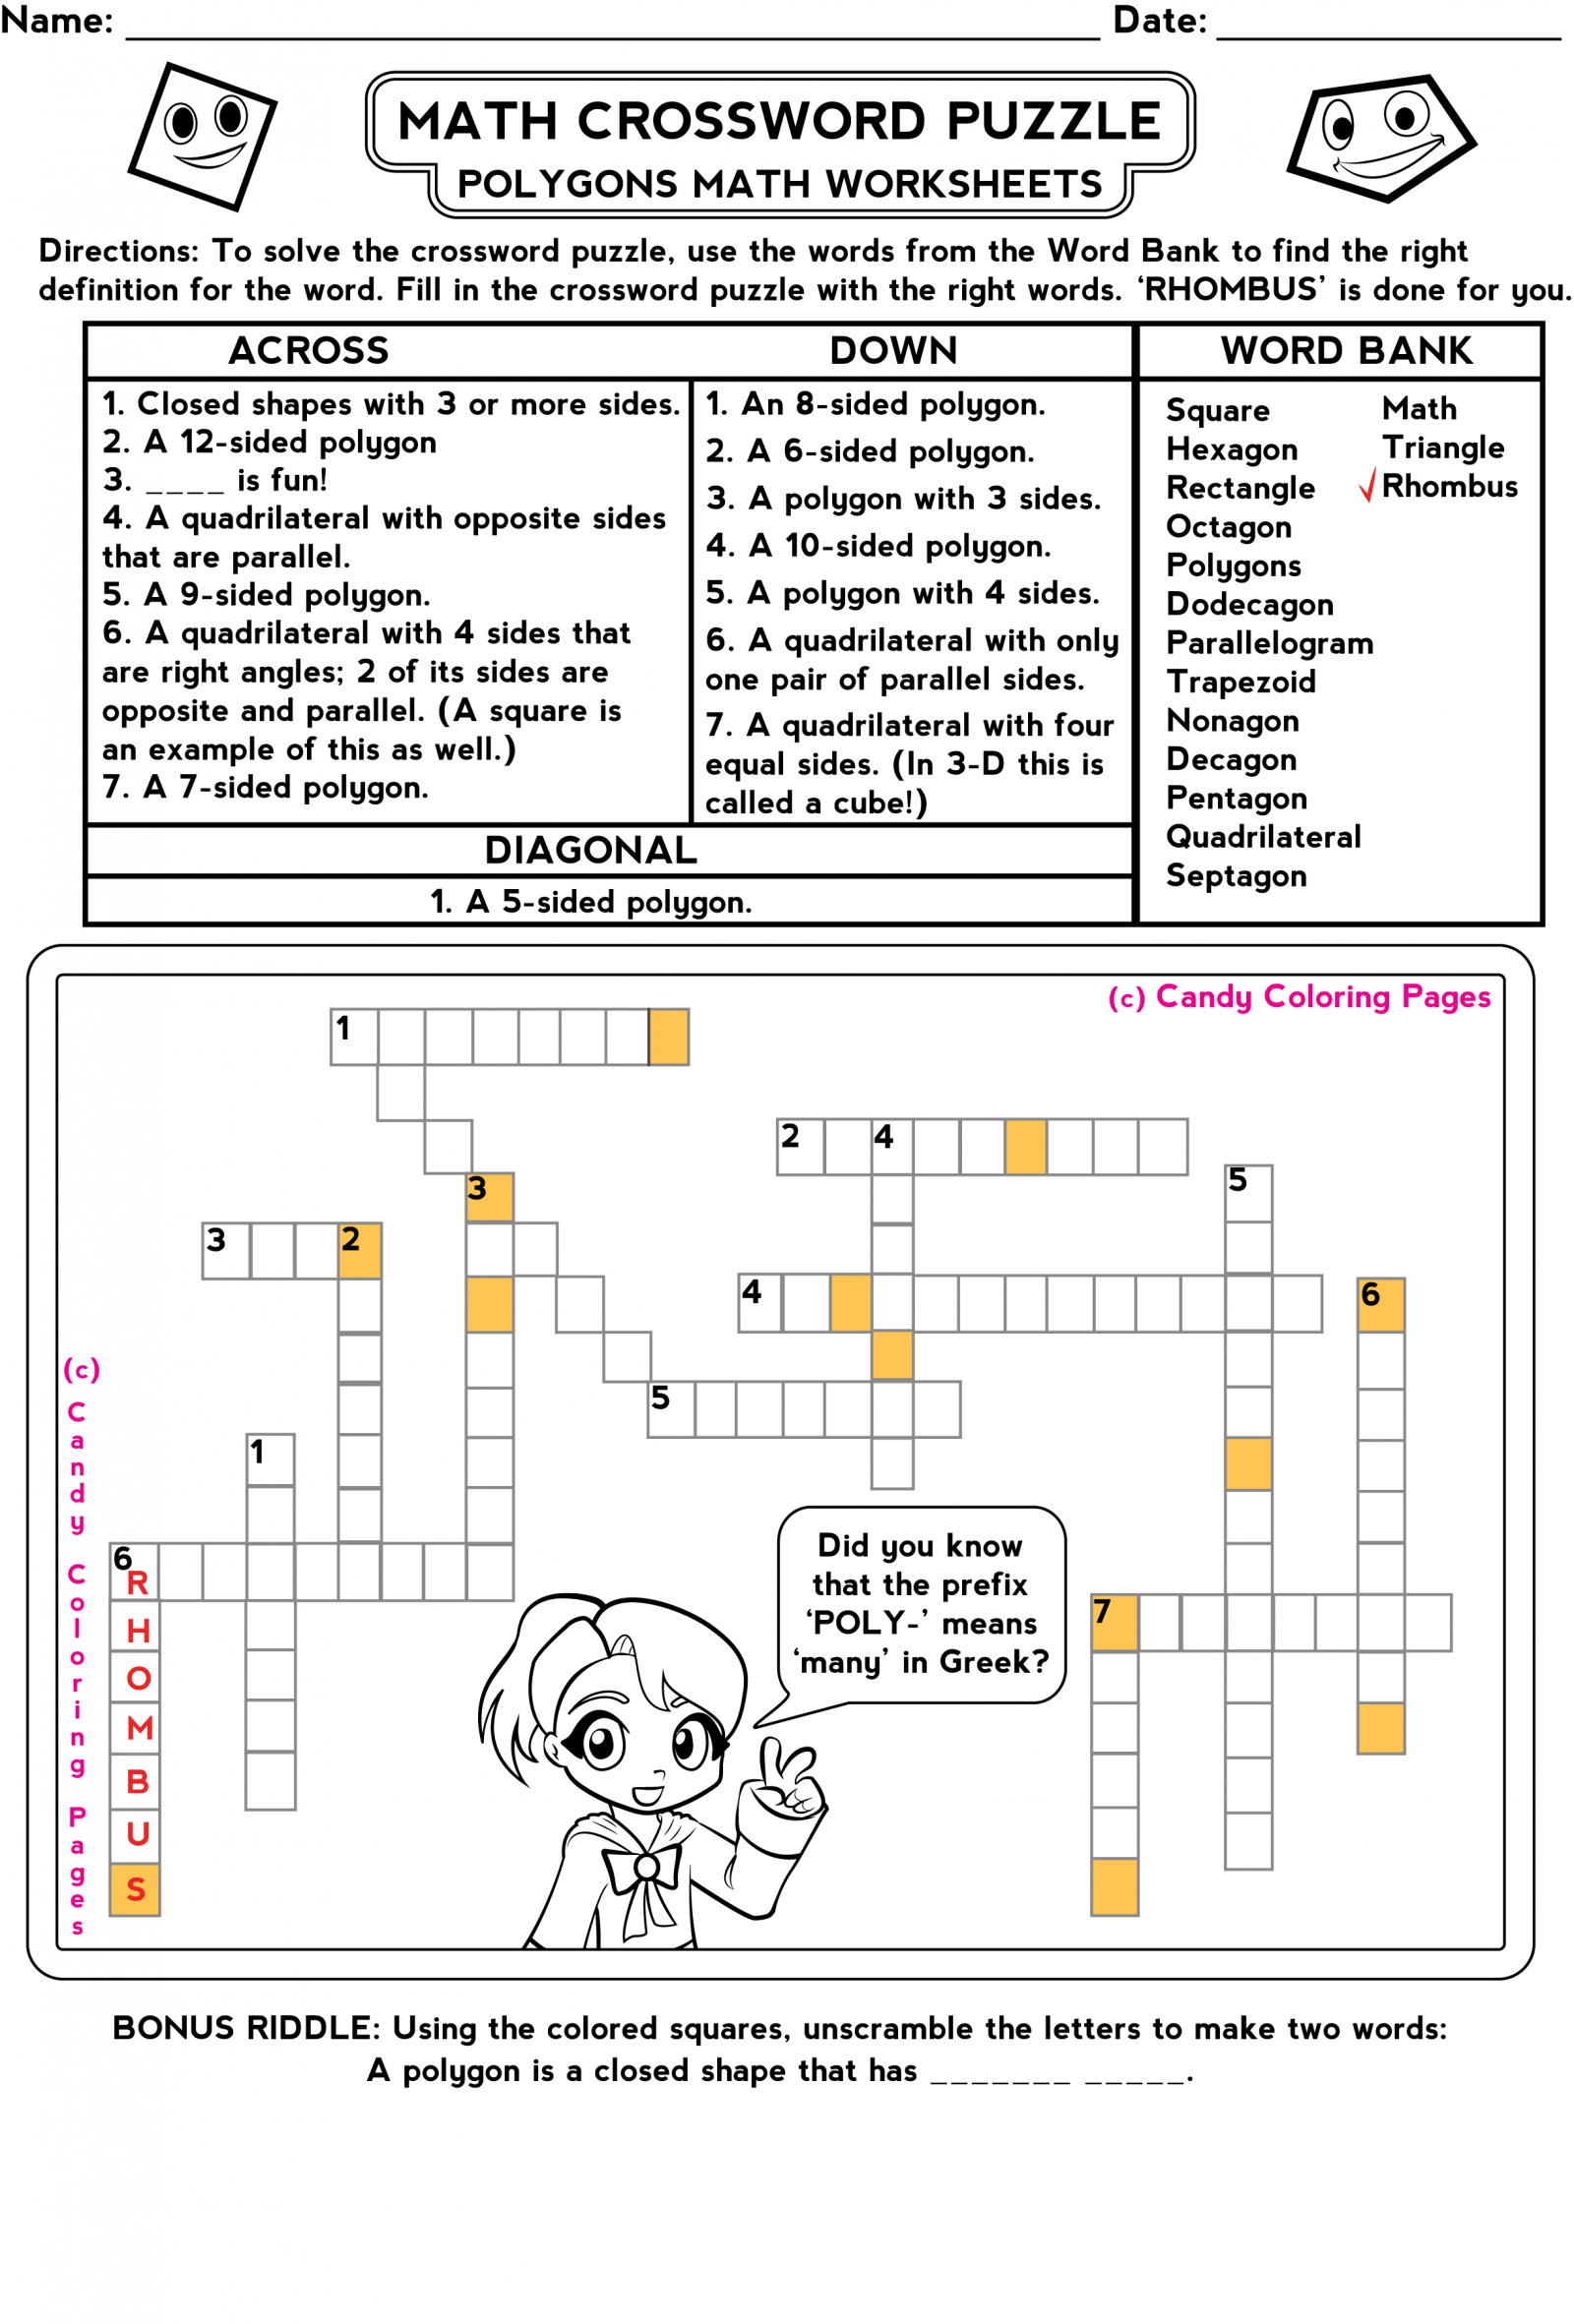 Printable Math Riddles For 3Rd Grade | Download Them Or Print - Free Printable Math Puzzles